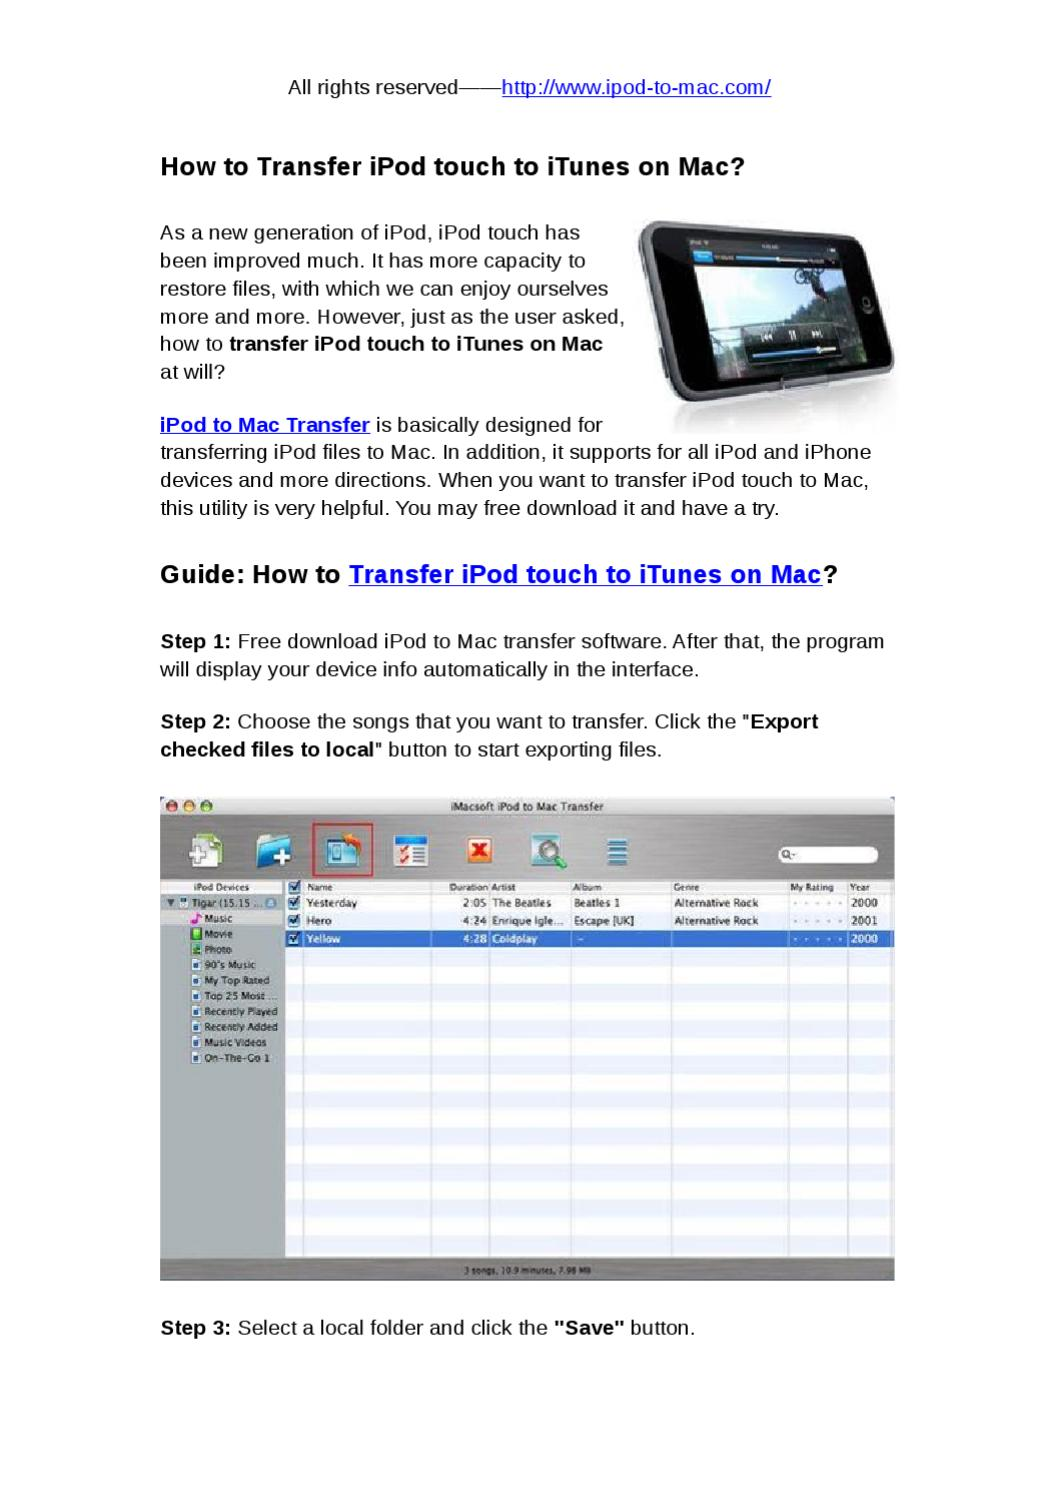 How to Transfer iPod touch to iTunes on Mac by snow abcd - issuu